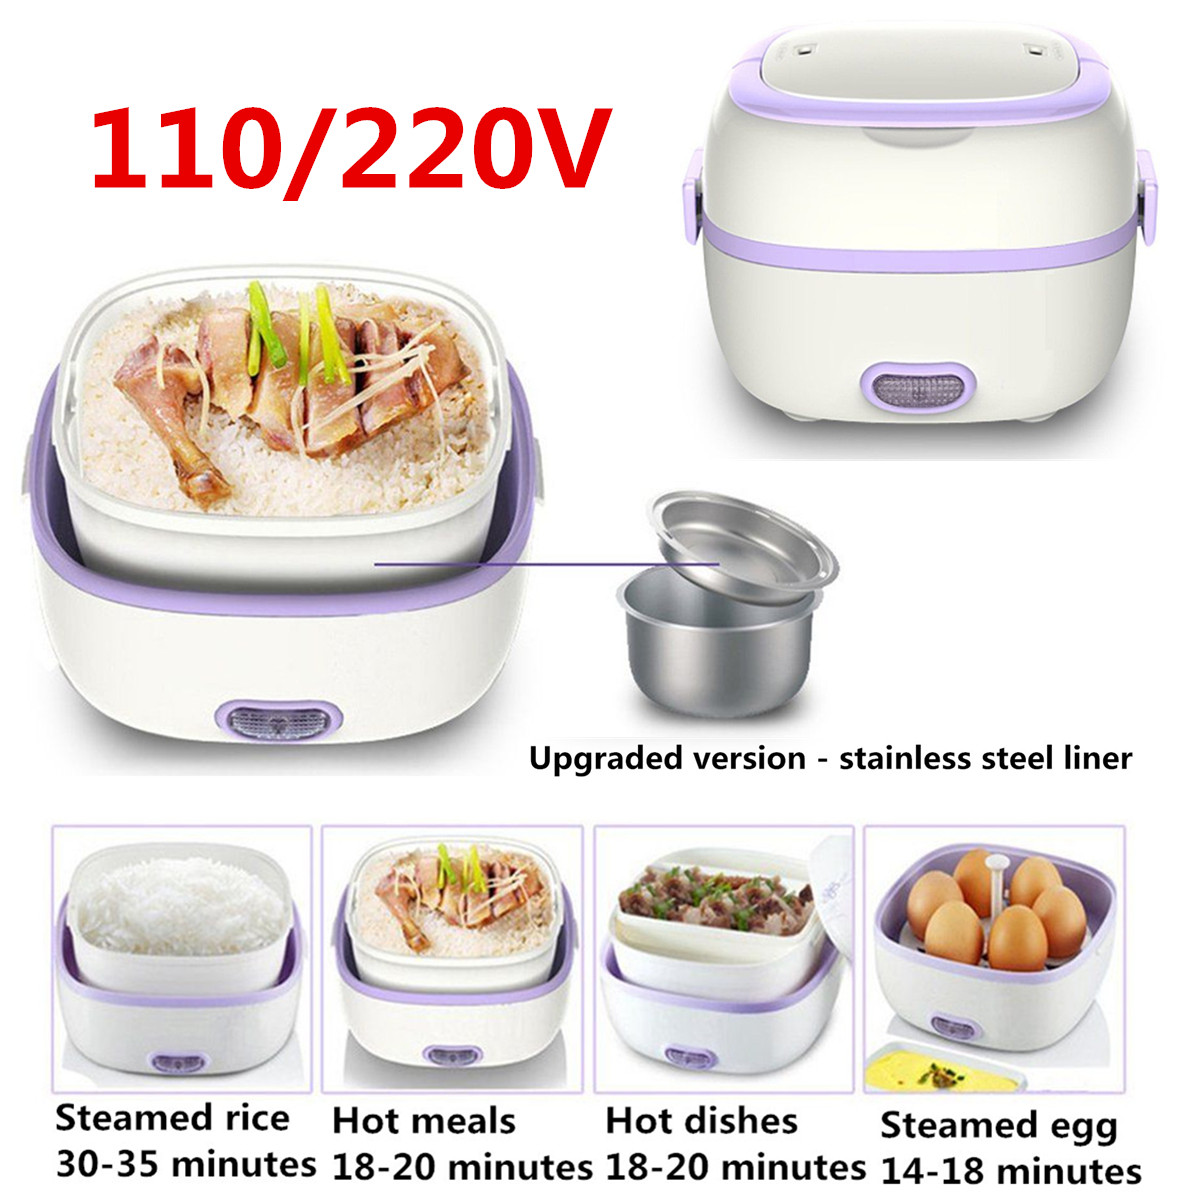 Multifunctional Electric Lunch Box Mini Rice Cooker Portable Food Heating Steamer Heat Preservation Lunch Box EU Plug/US plugMultifunctional Electric Lunch Box Mini Rice Cooker Portable Food Heating Steamer Heat Preservation Lunch Box EU Plug/US plug